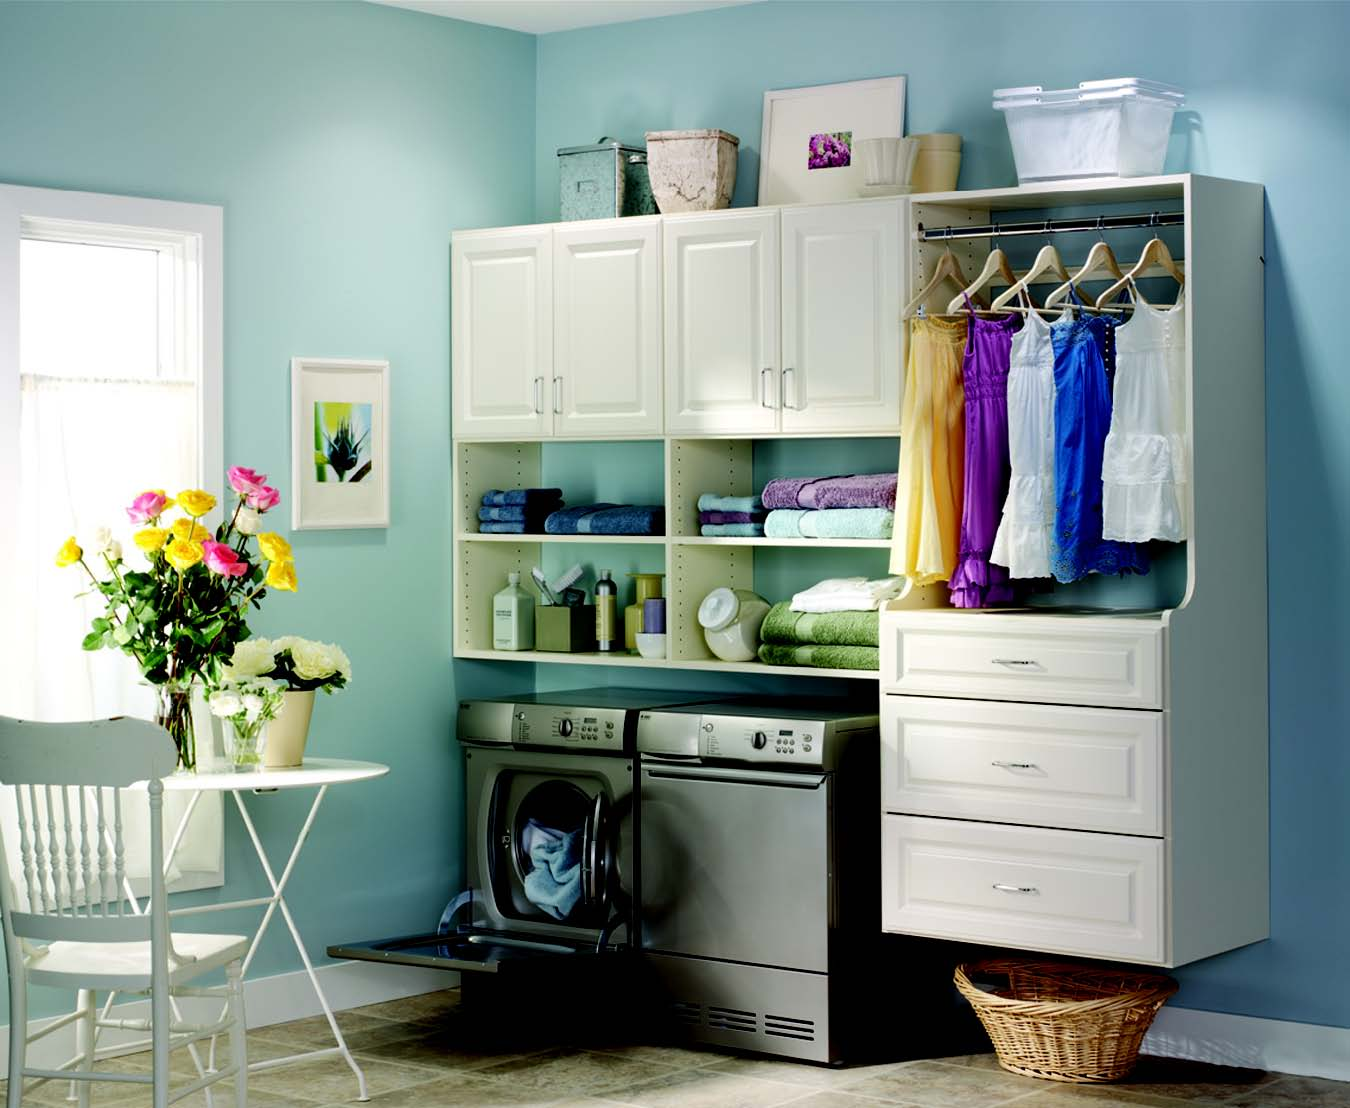 Organize Your Laundry Room Cabinets | My Decorative on Laundry Room Decor  id=99460